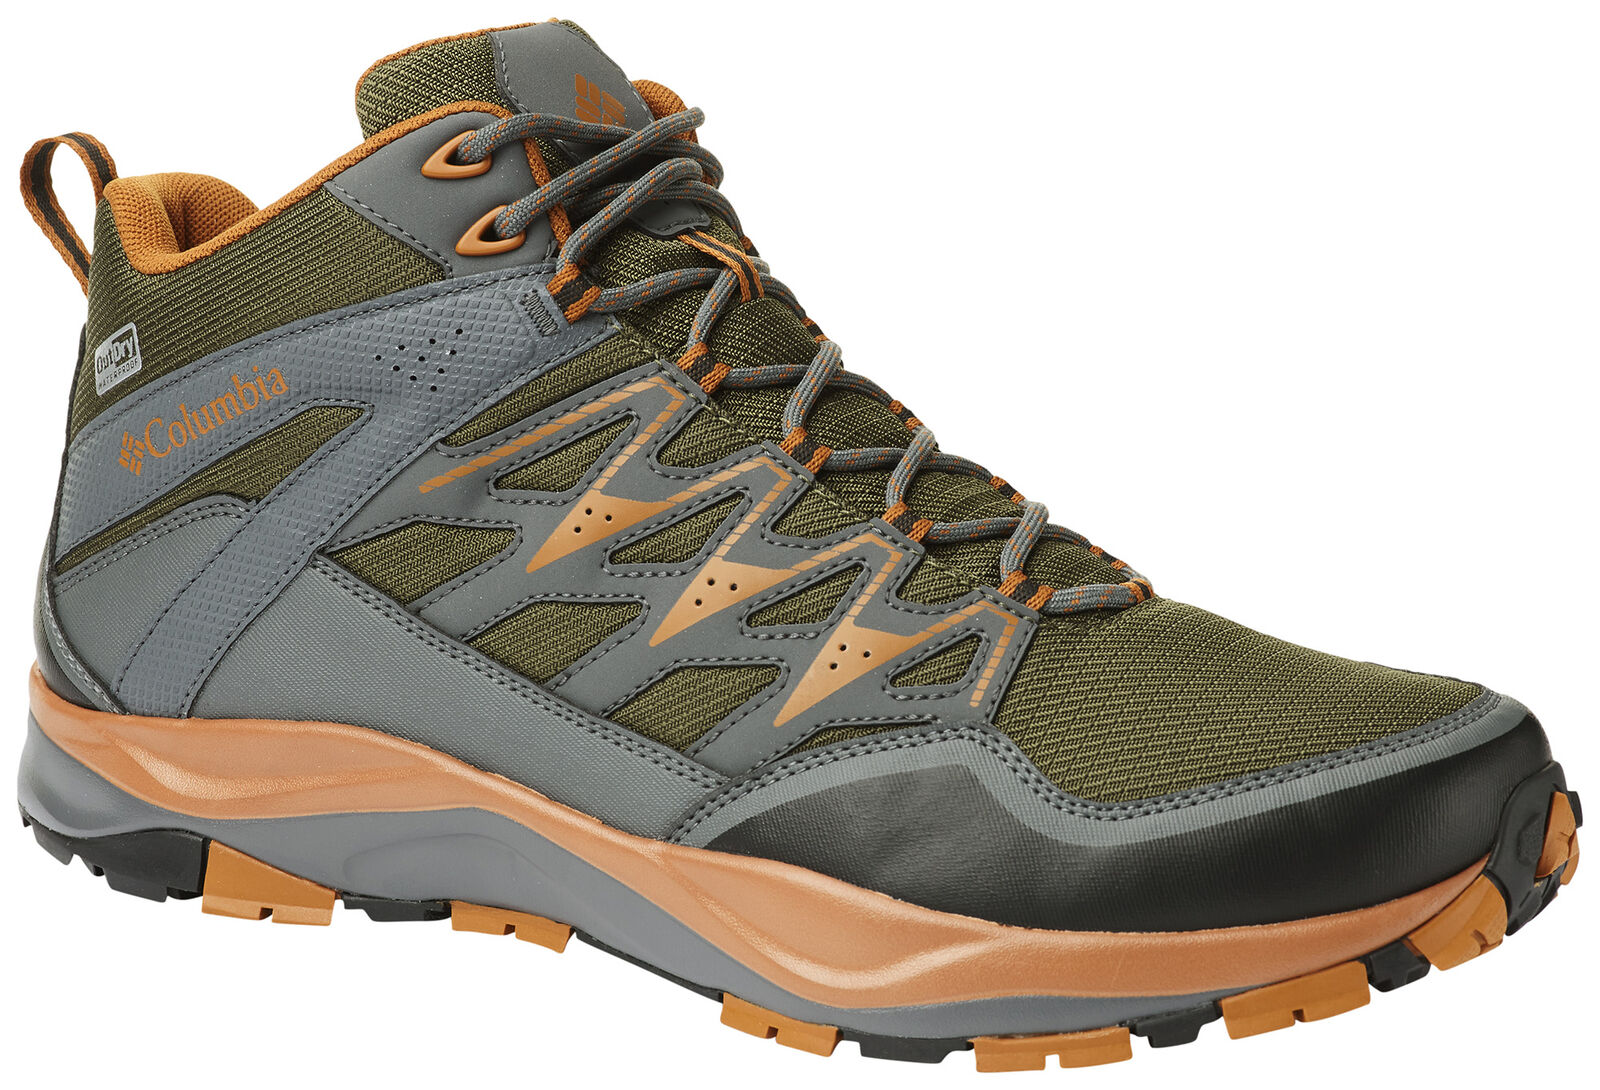 Men's Columbia Wayfinder Mid Outdry Boot Nori Bright Copper